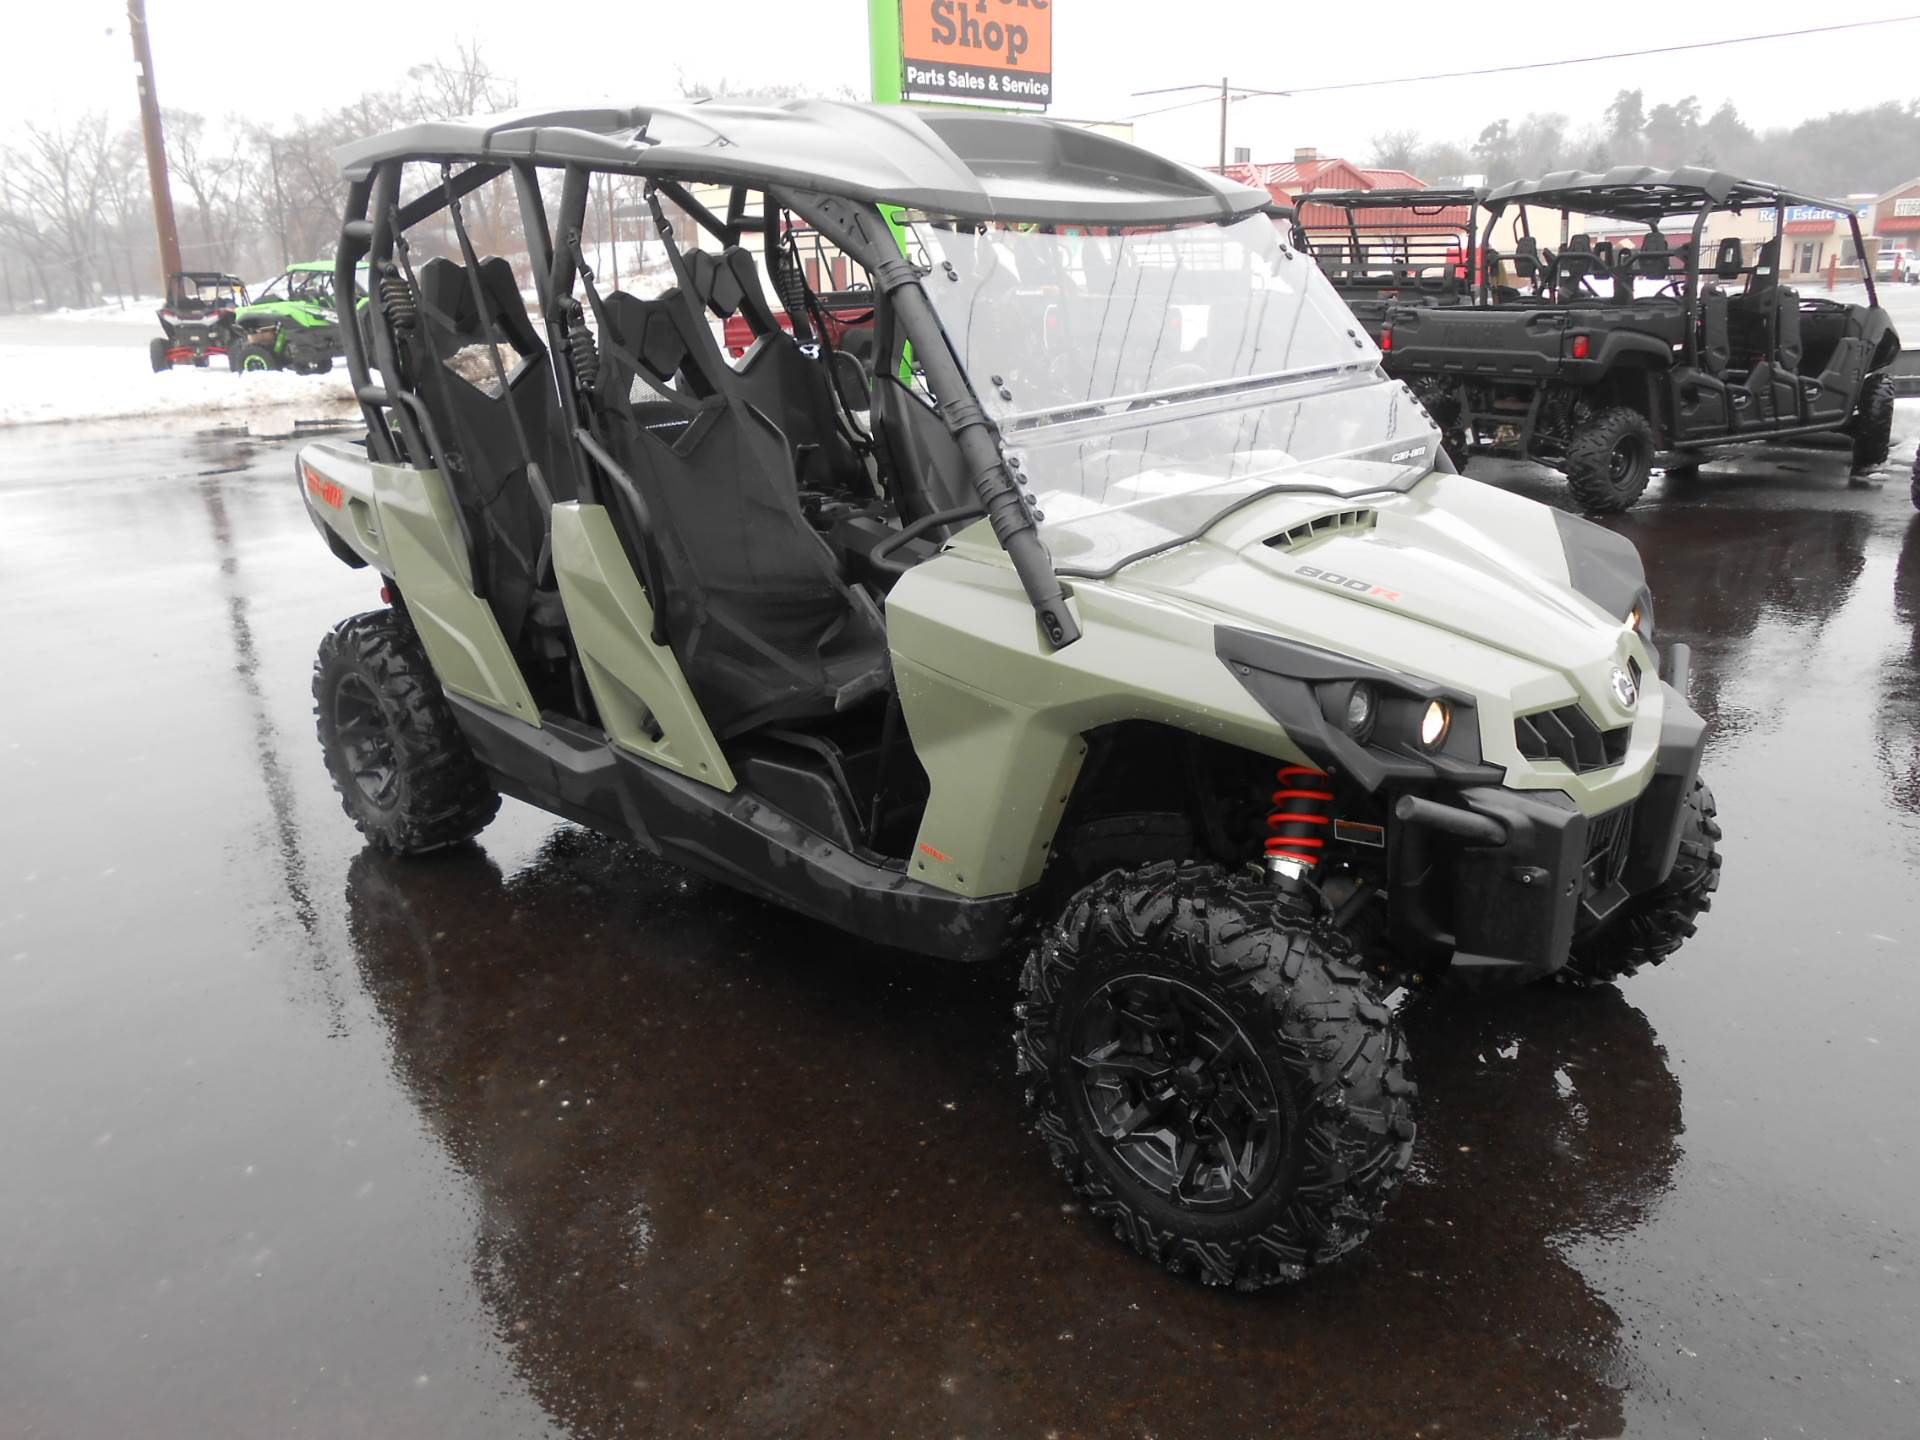 2019 Can-Am Commander MAX DPS 800R in Howell, Michigan - Photo 2